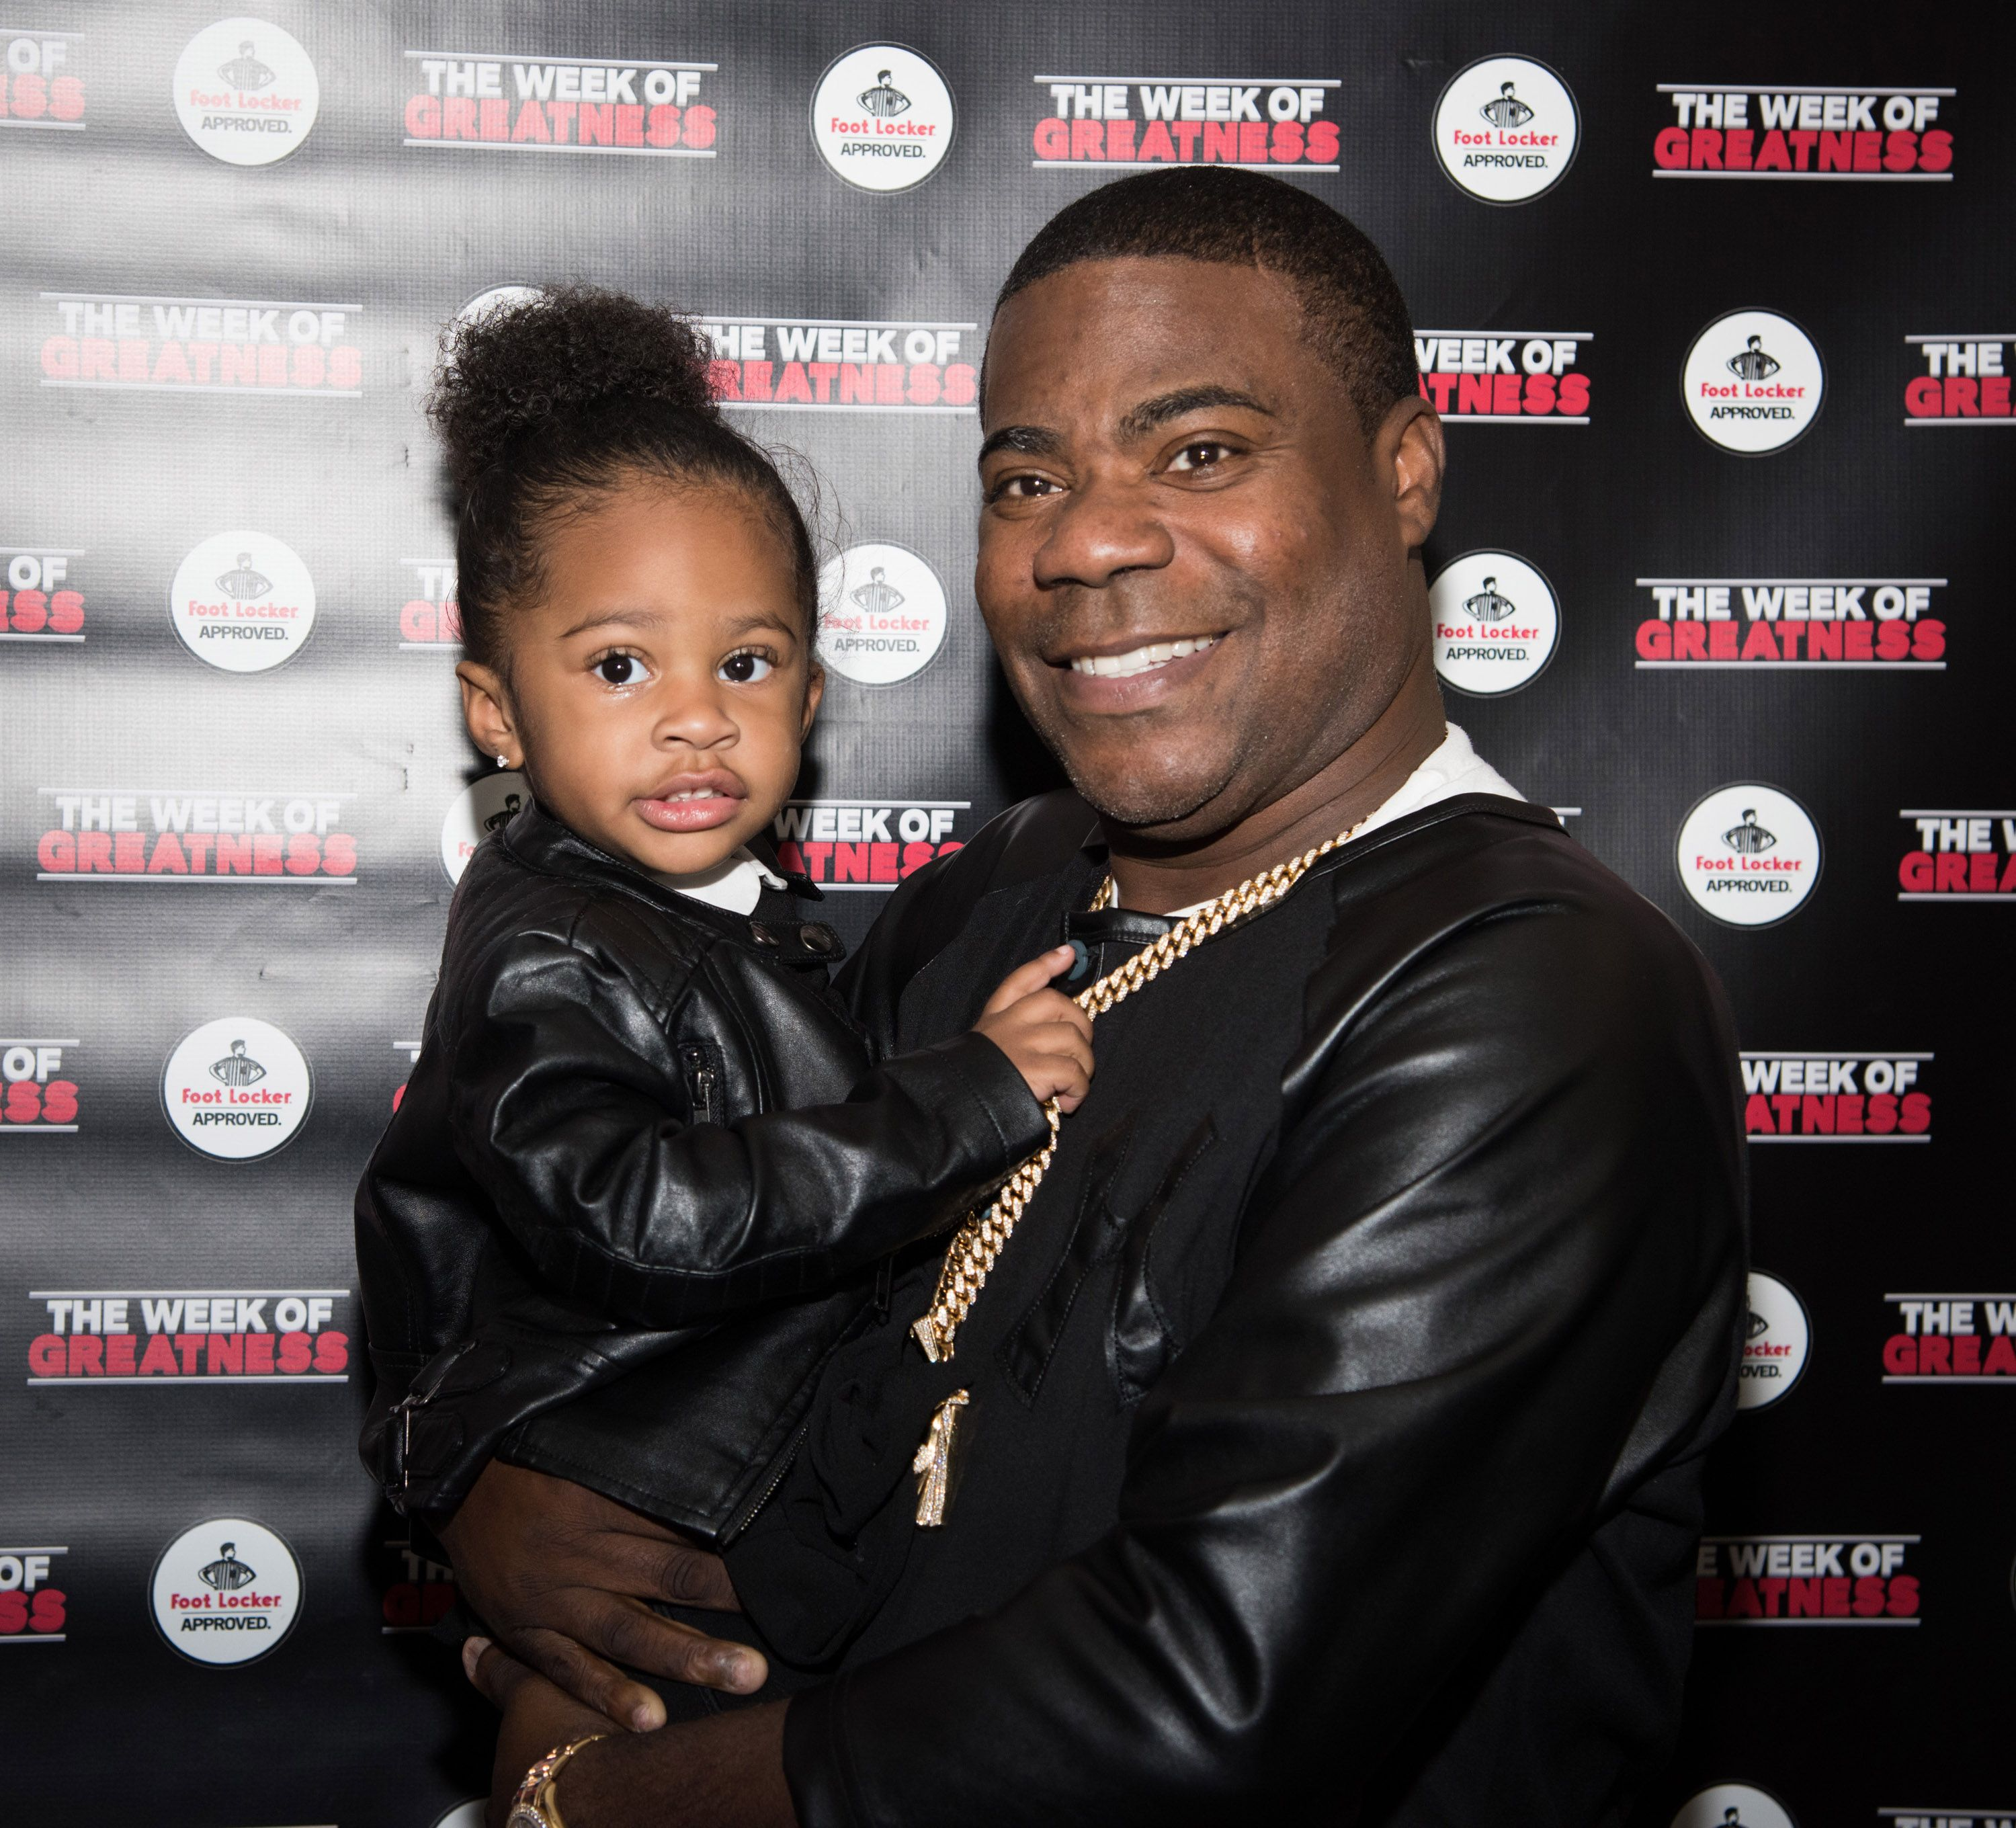 Tracy Morgan and daughter Maven at the Fourth Annual Week of Greatness Kick Off Event in New York City in 2015. | Photo: Getty Images